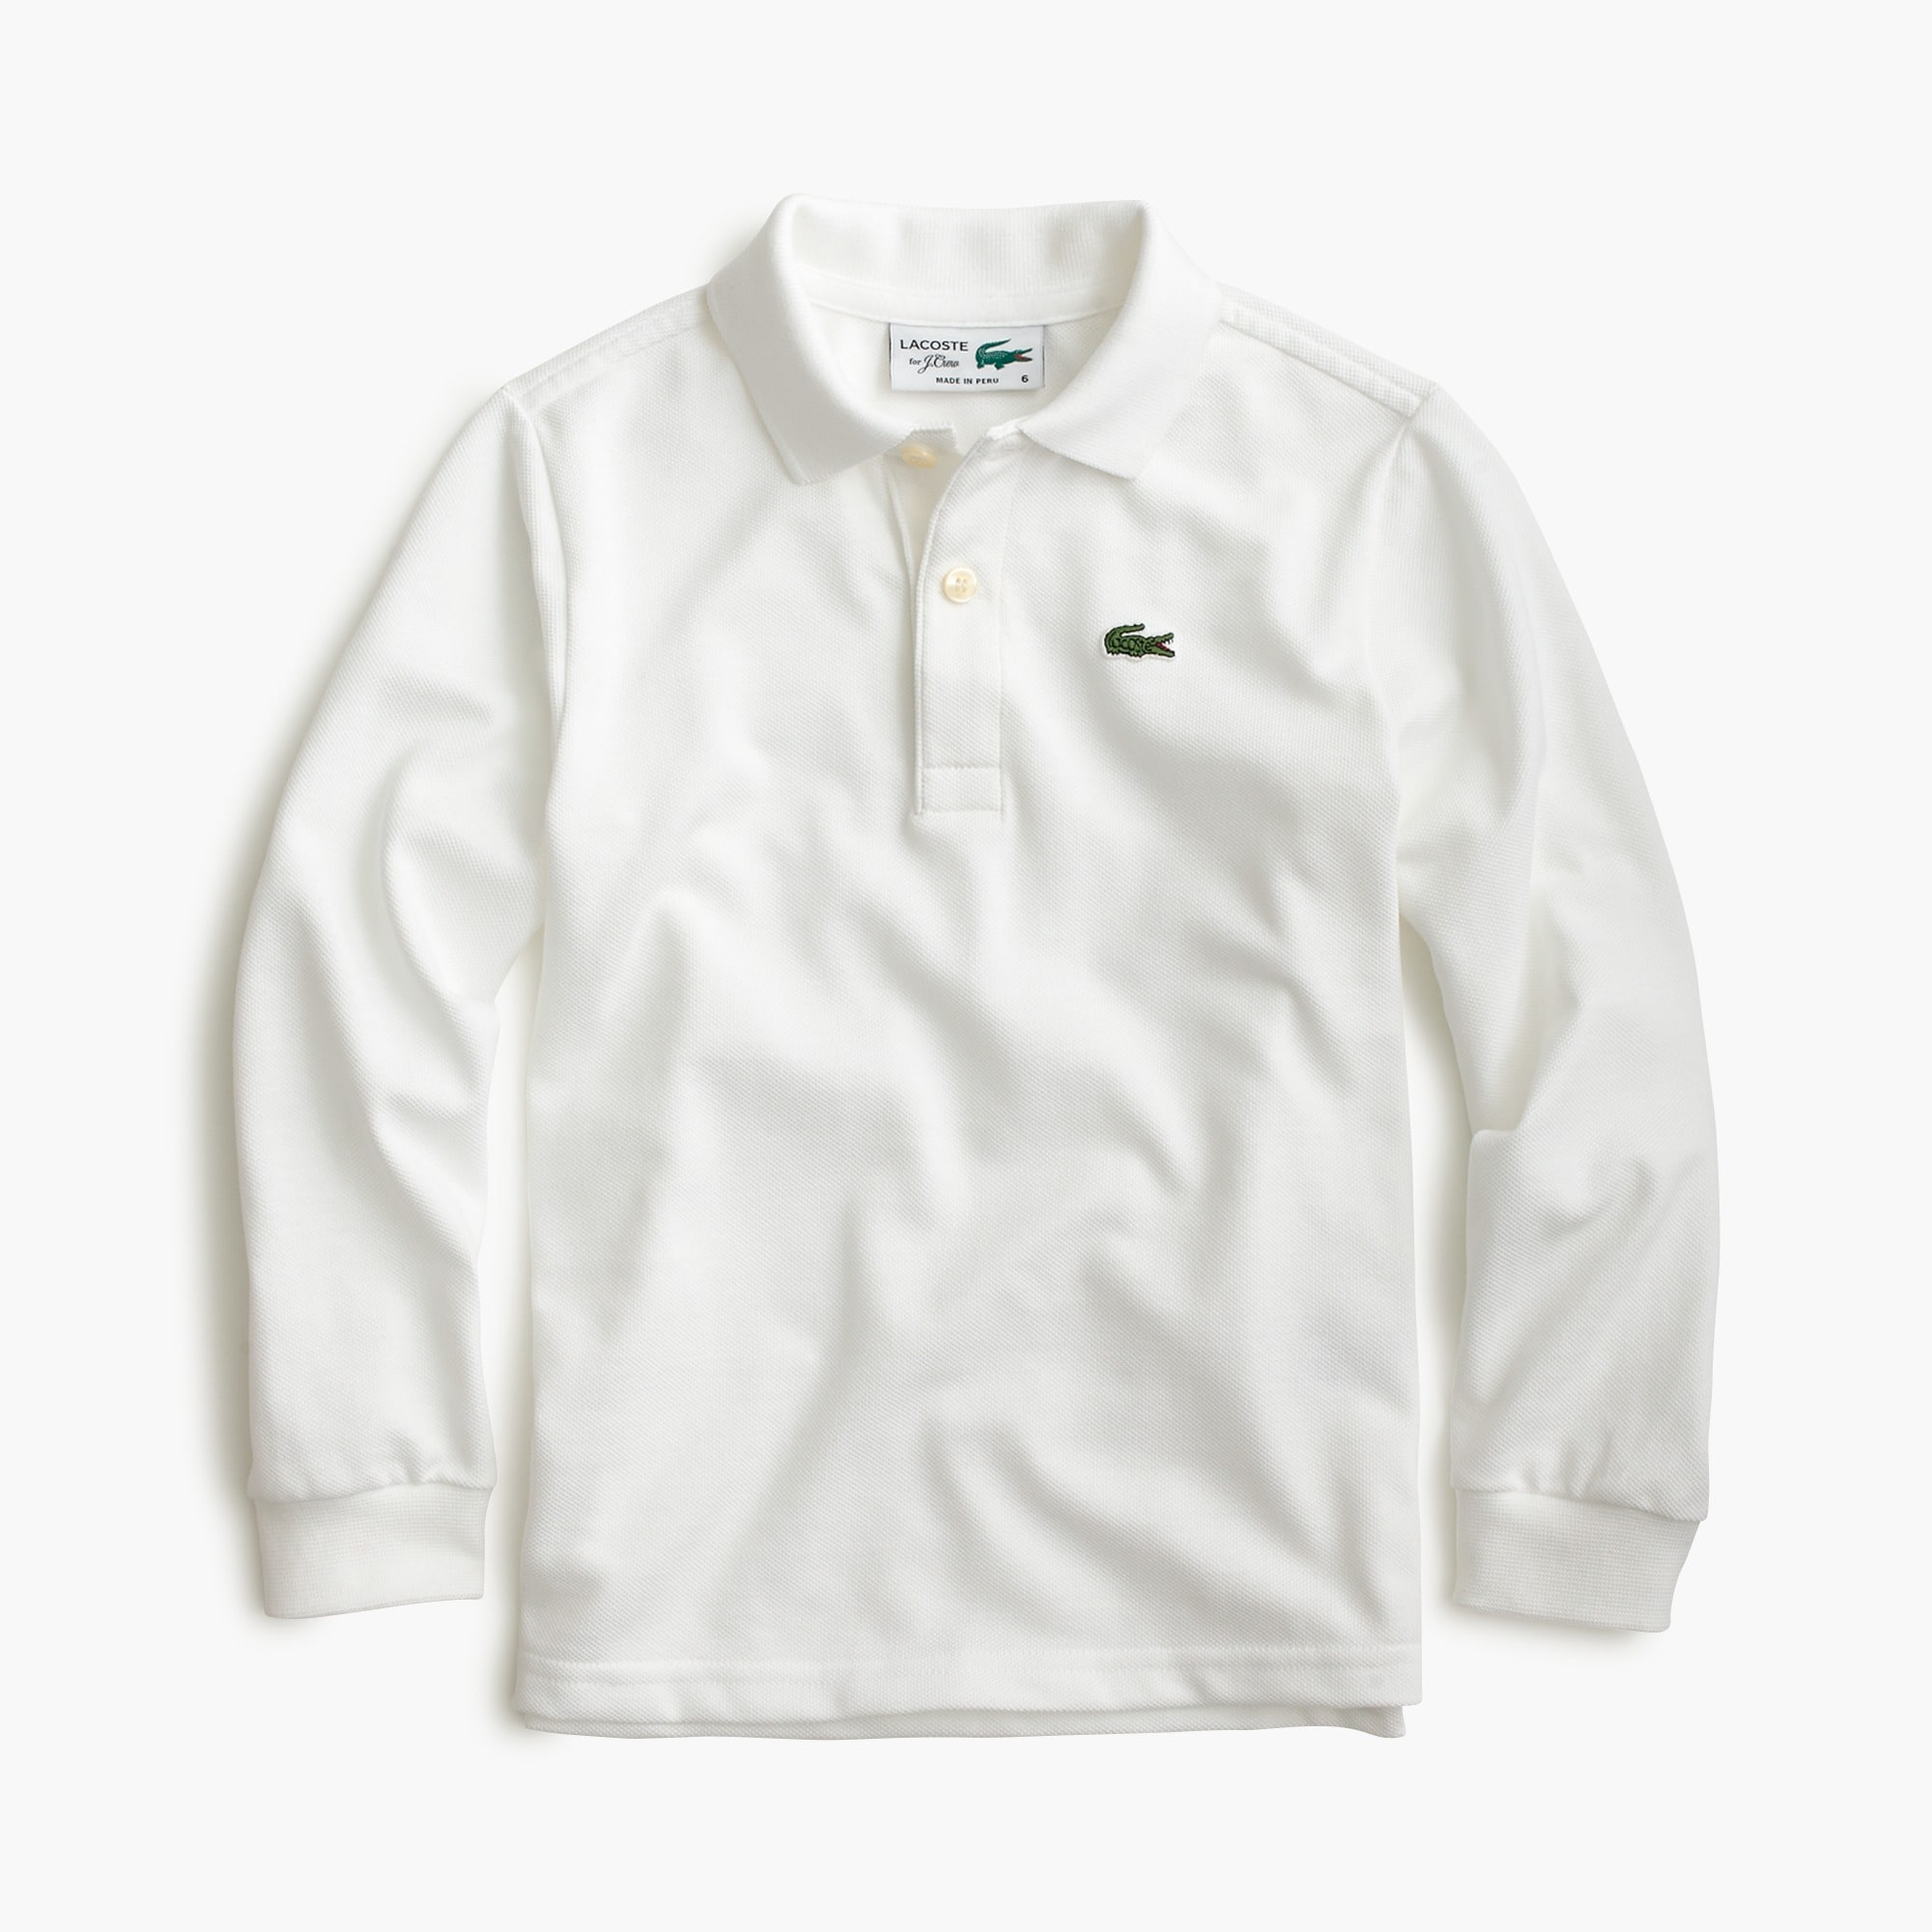 Kids' Lacoste® for J.Crew long-sleeve polo shirt boy t-shirts & polos c